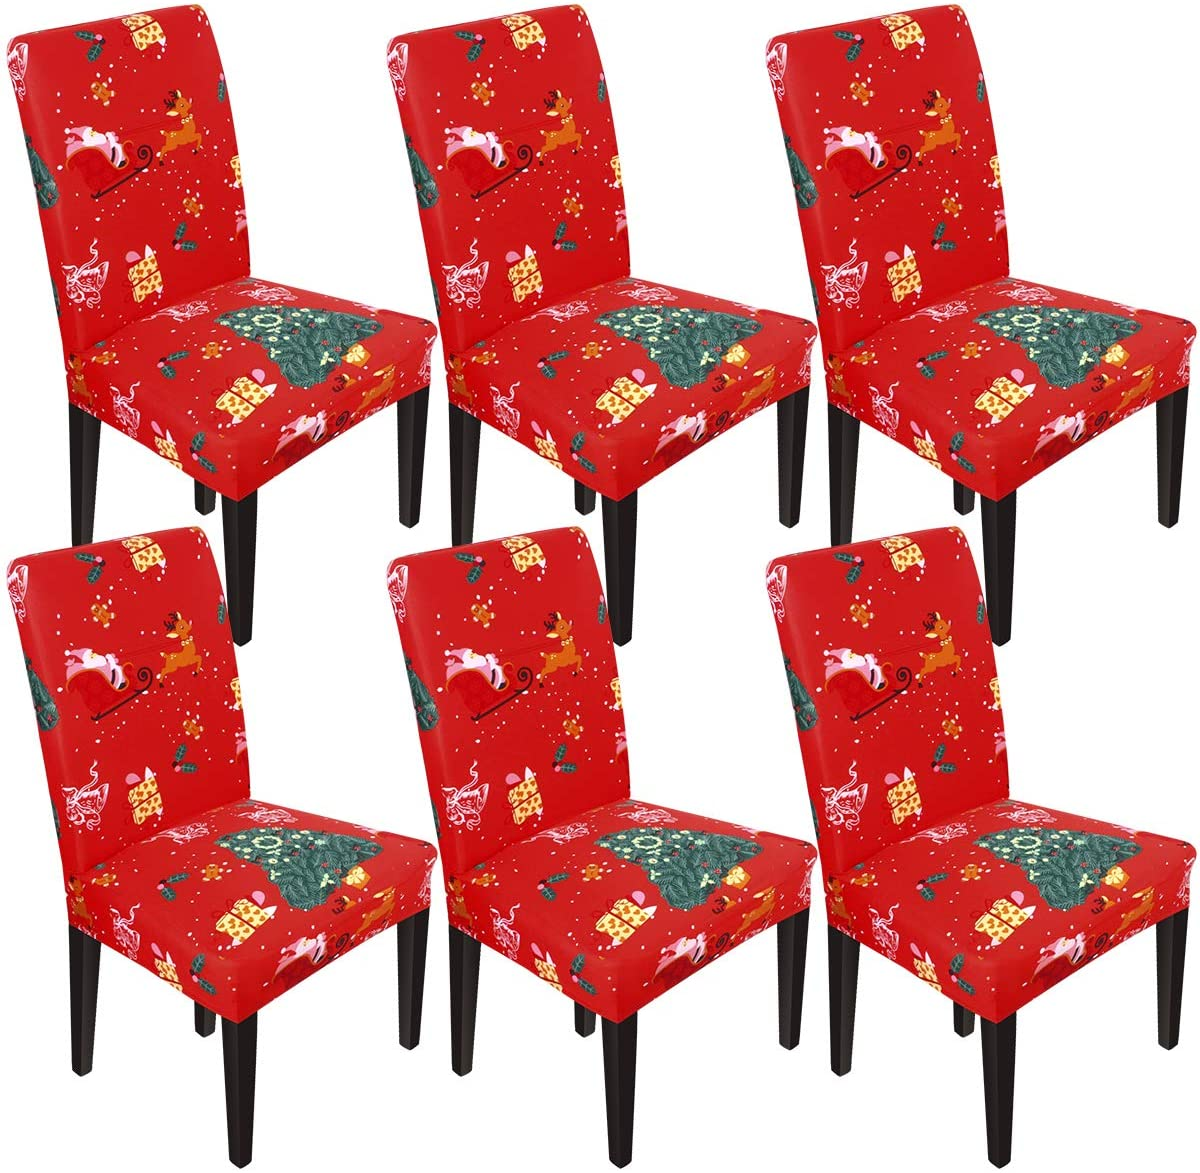 NORTHERN BROTHERS ChristmasDining Chair Covers for Dining Room Parsons Chair Slipcovers Christmas Decoration (Santa Claus, 6)